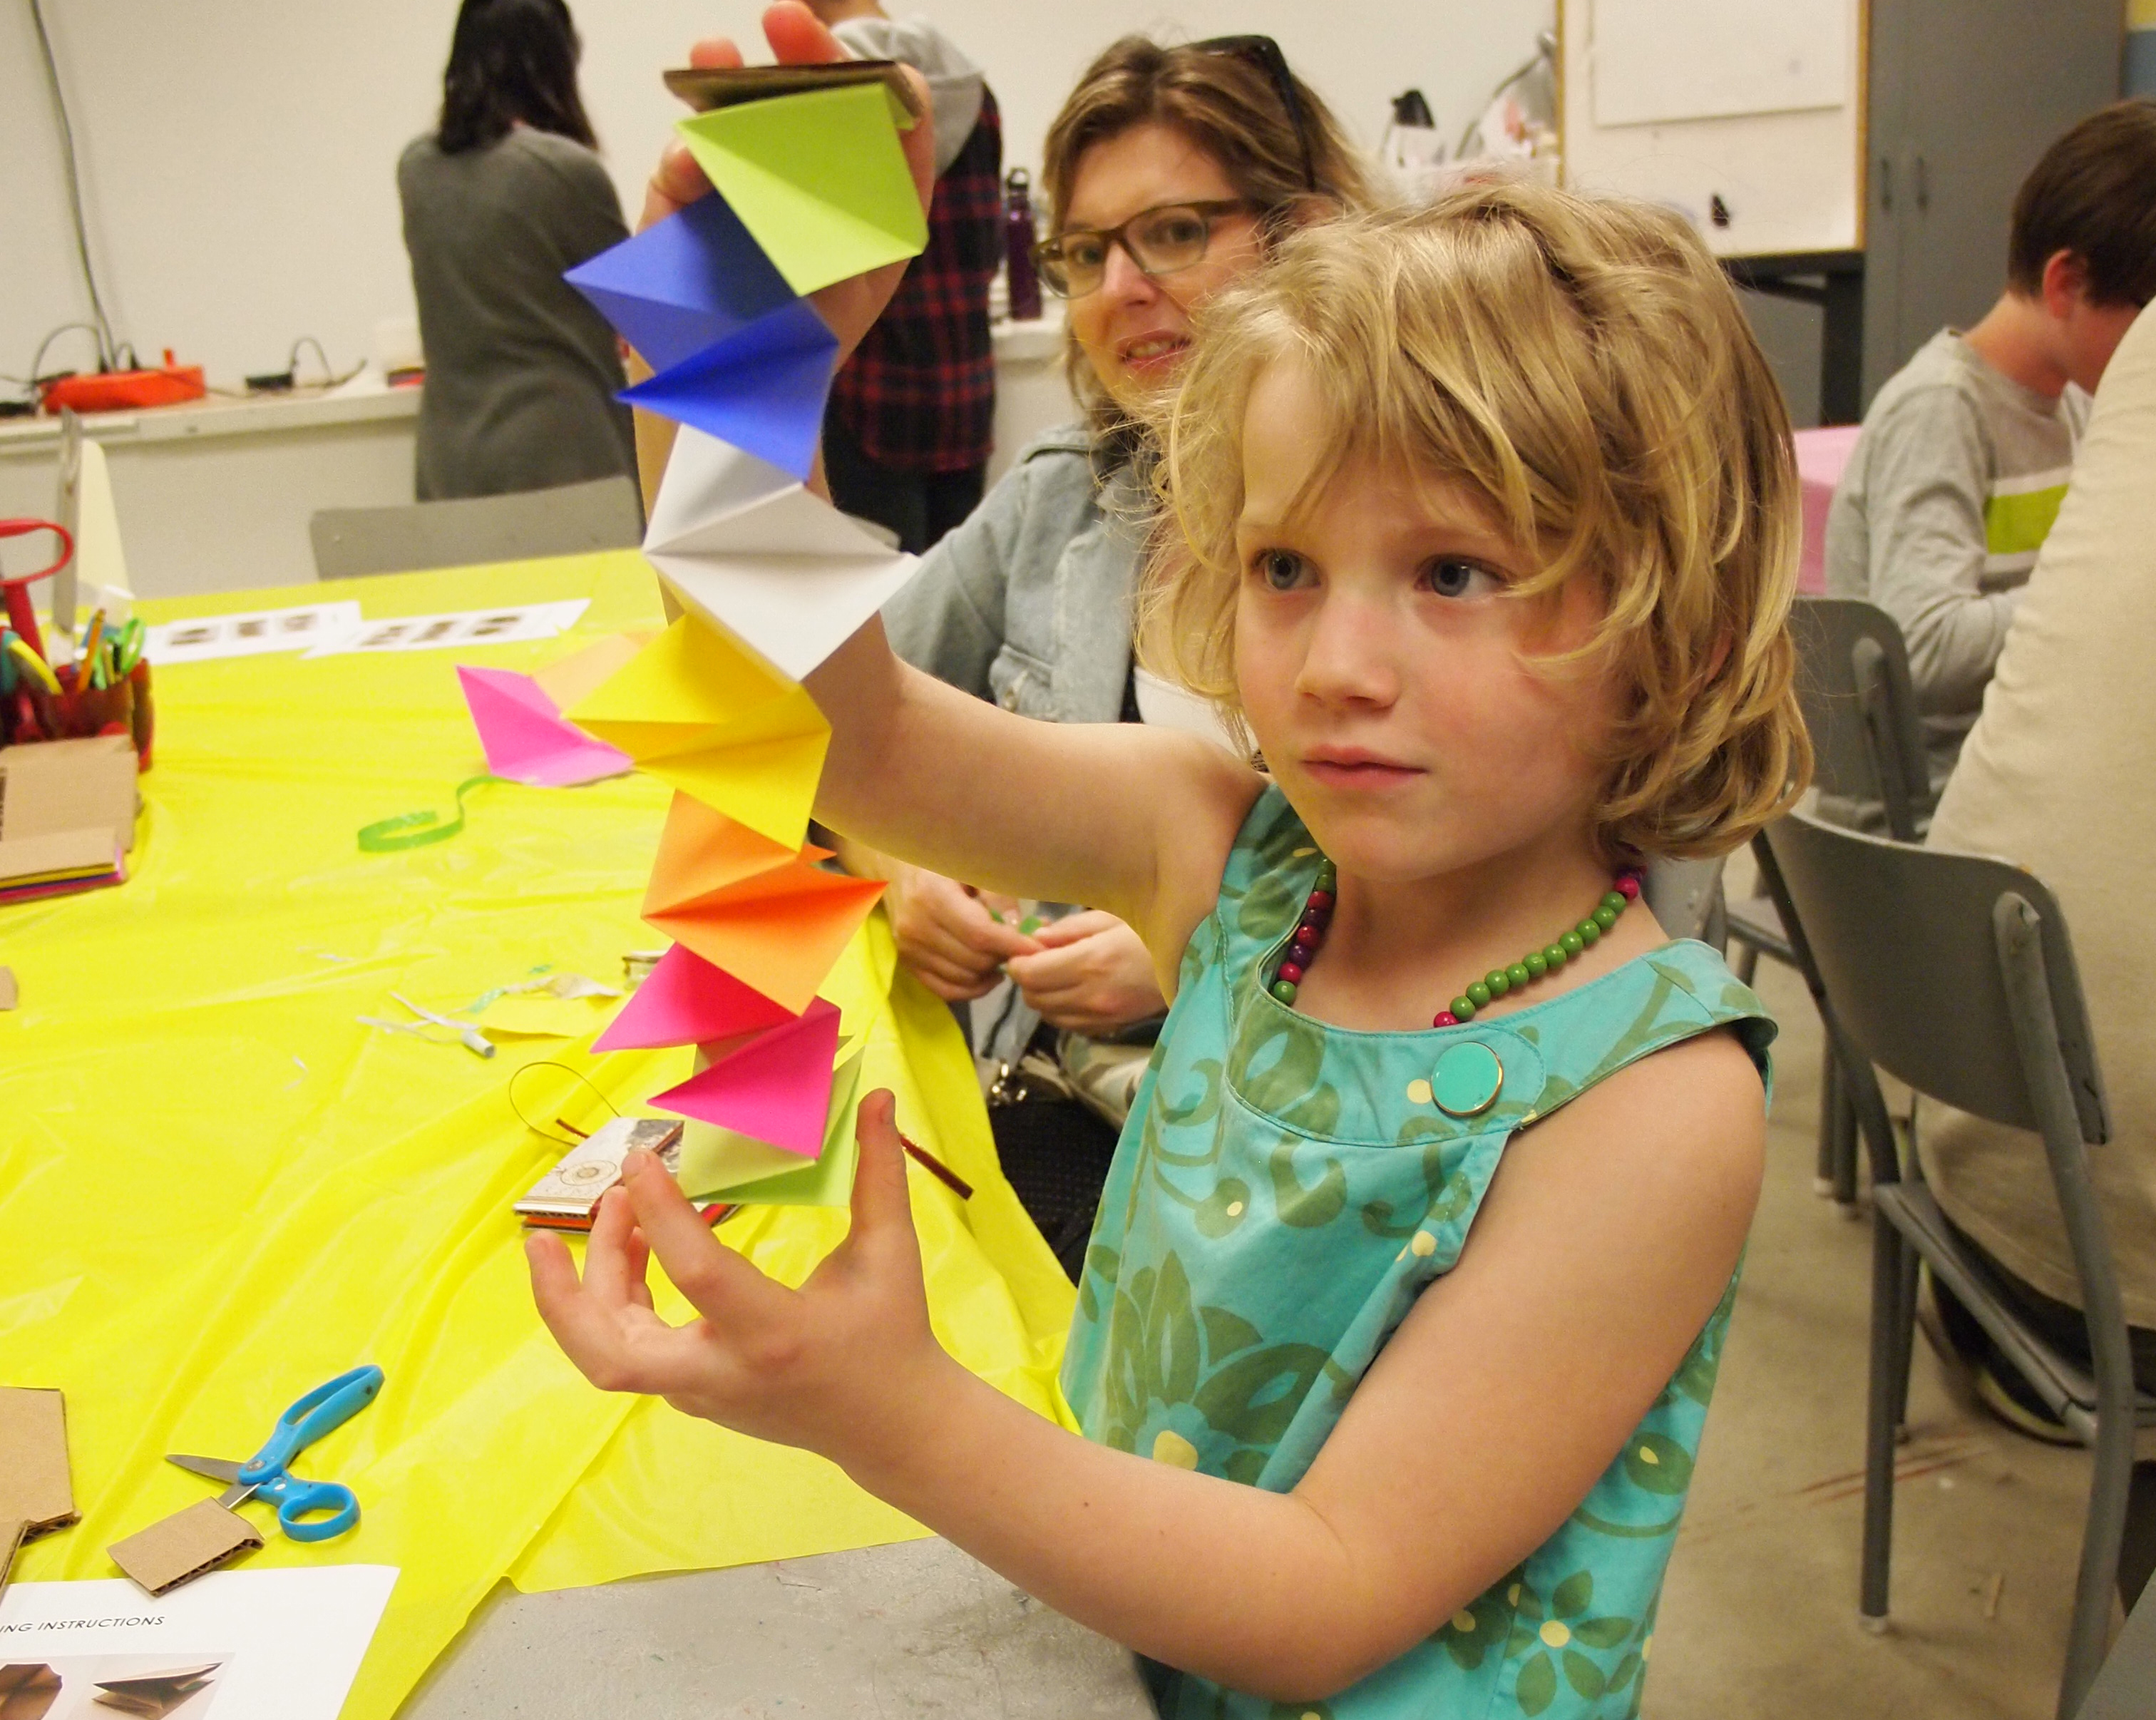 A young girl extends a colourful folded paper sculpture vertically between her hands while her mother looks on in the KWAG studio